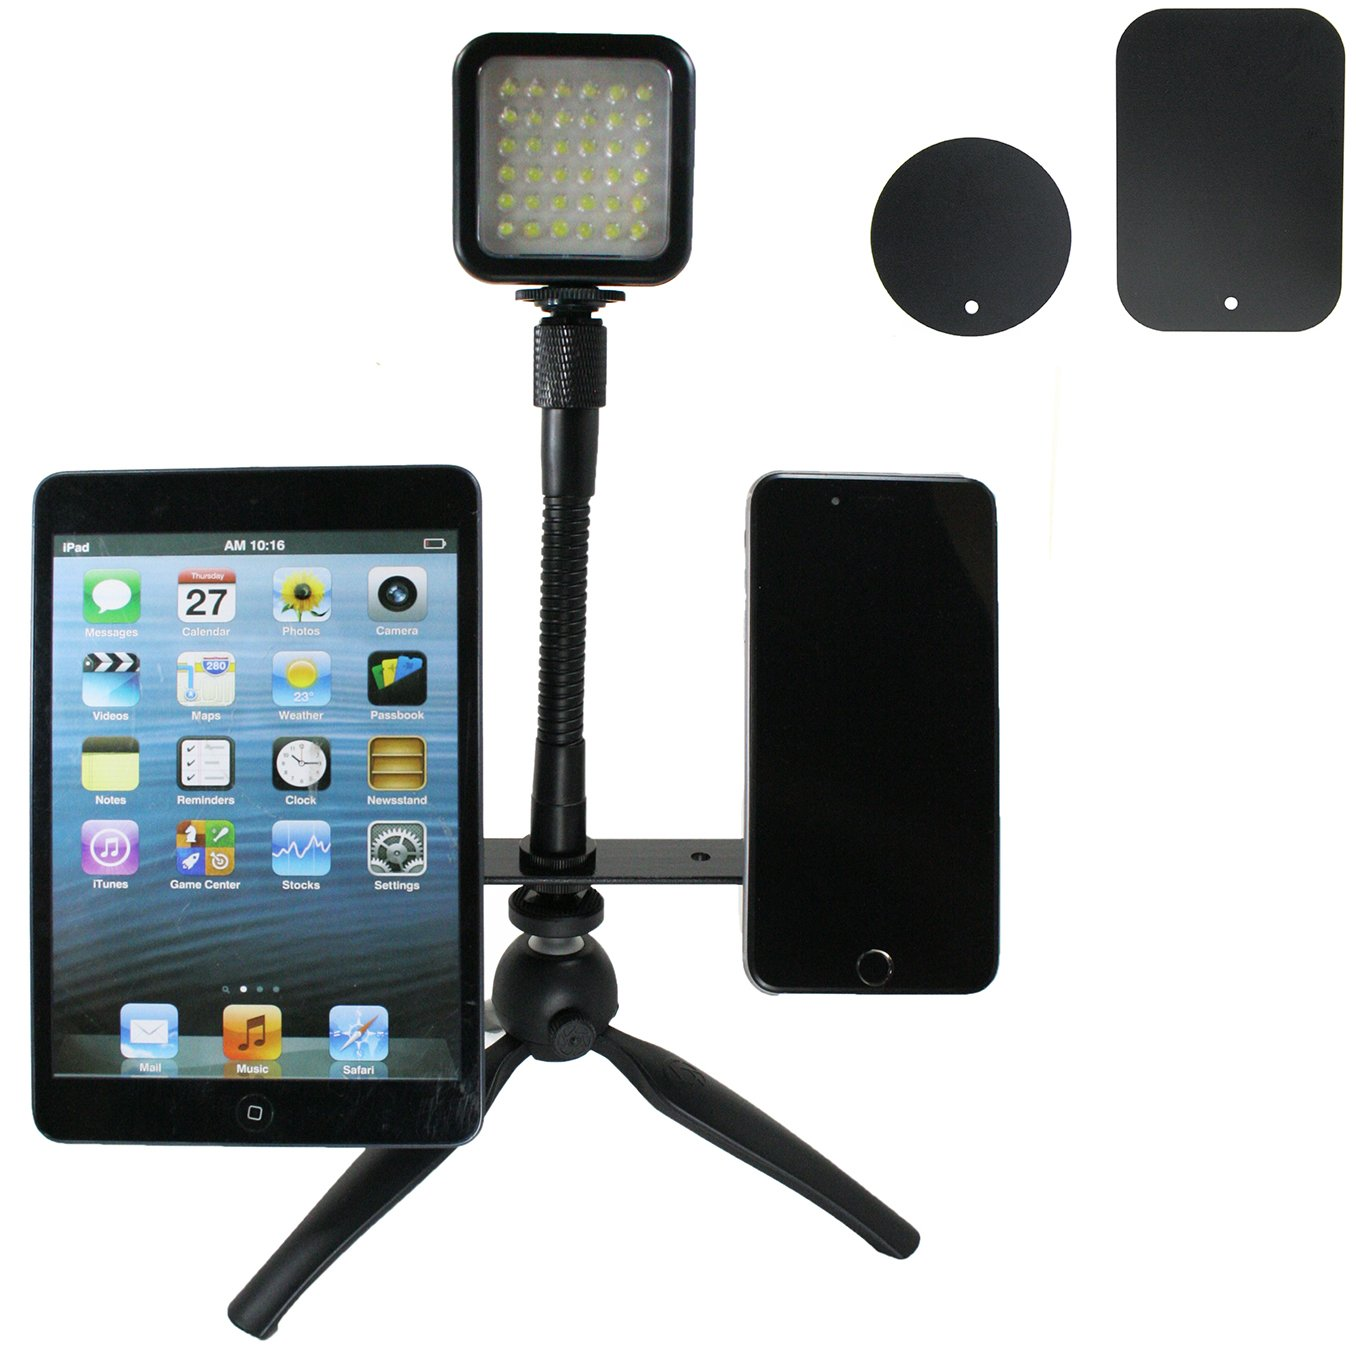 Live Stream Gear - Dual Phone and LED Light Live Stream Tripod Magnetic Mount System. Mount 2 Phones via Magnet and Metal Plate to This Tripod for Live Stream with LED Light. Strong Hold. (Black)